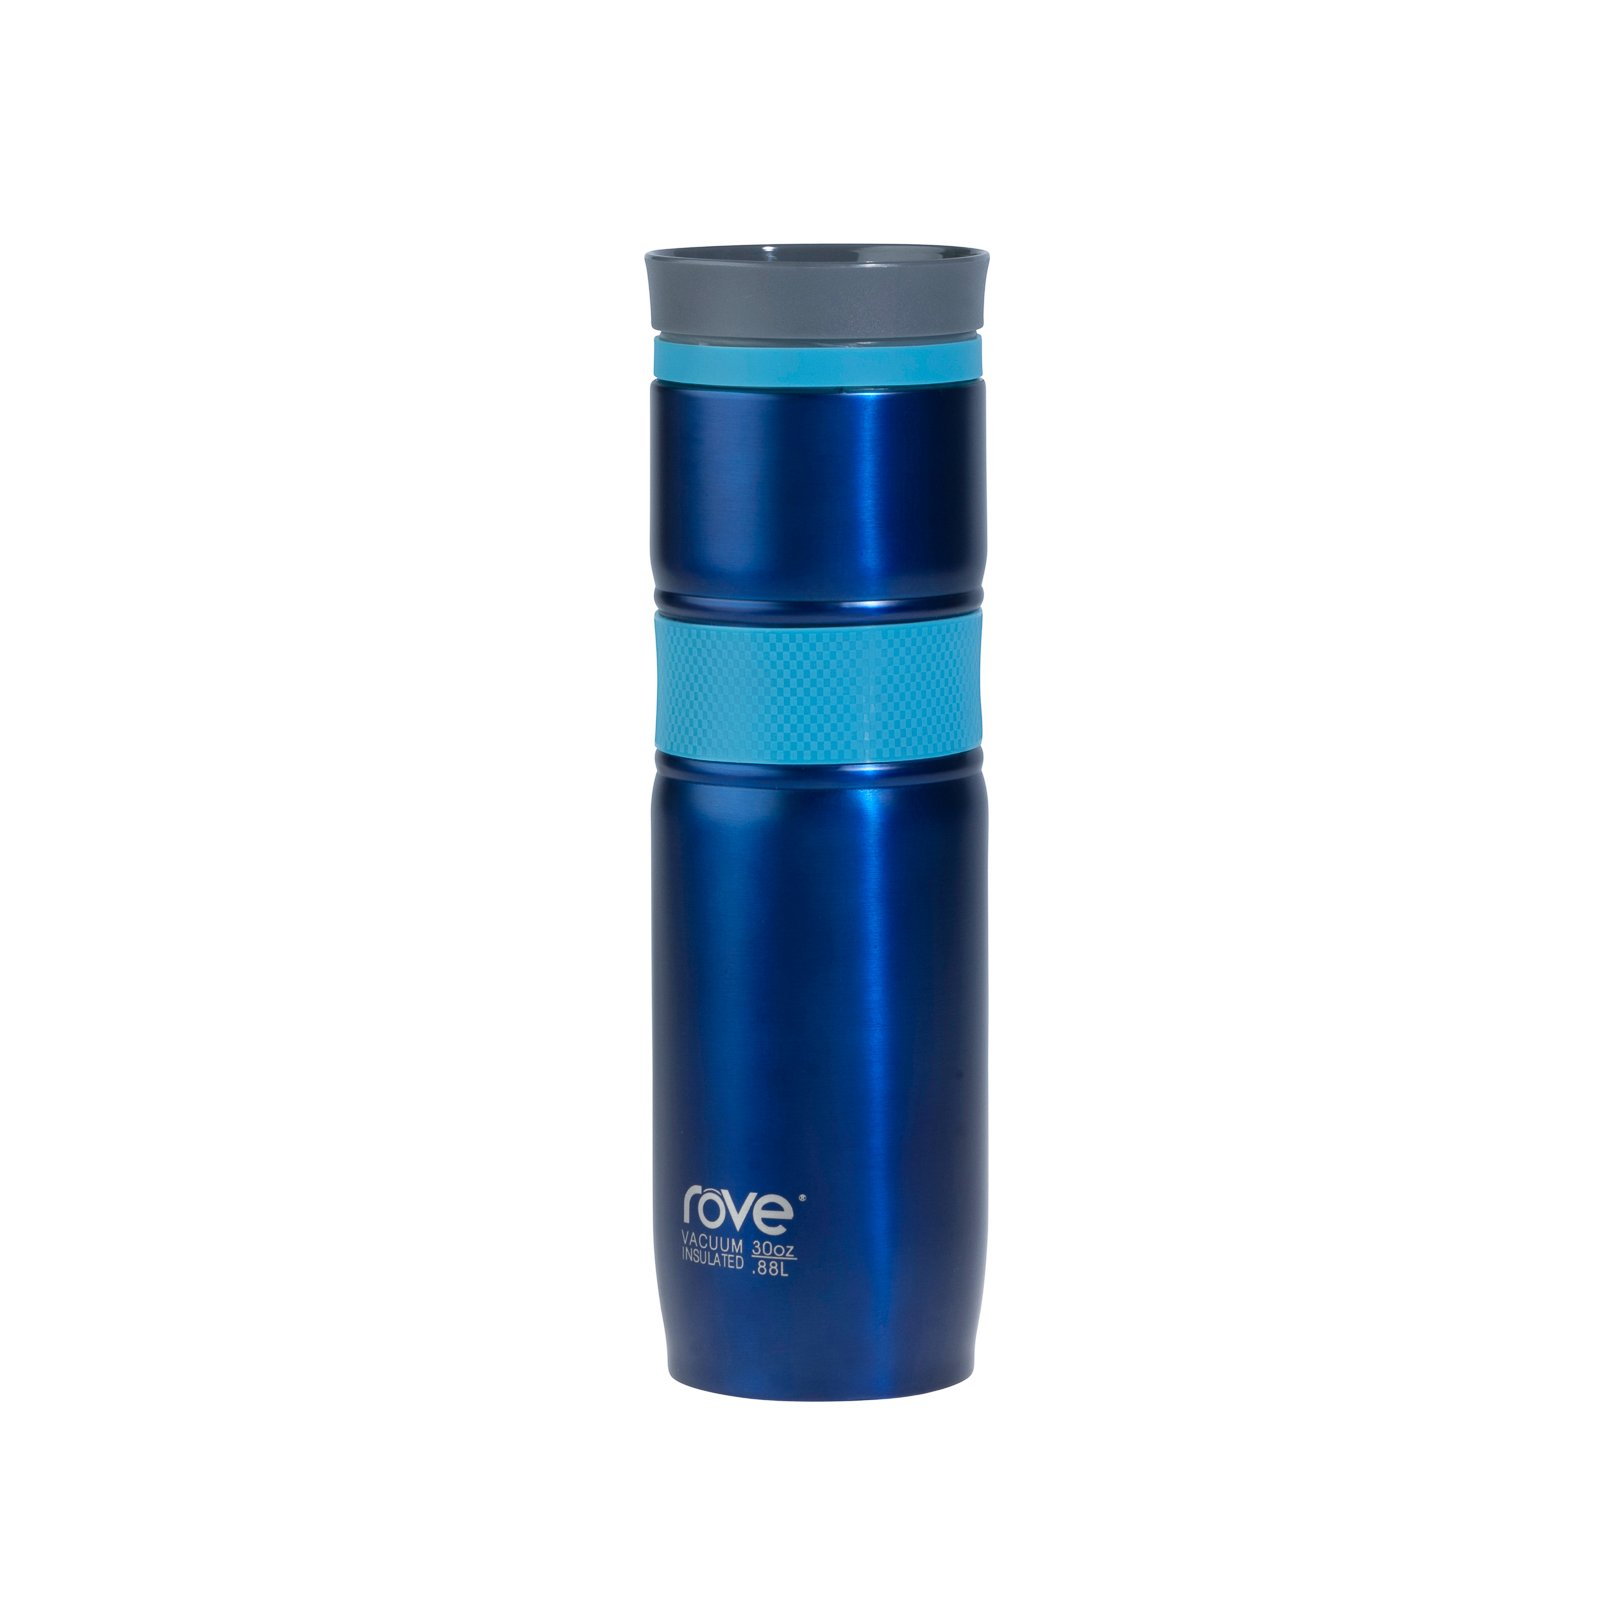 30oz Double Wall Stainless Steel Vacuum Flask With 360 sipping - Montenegro 1 (Blue)